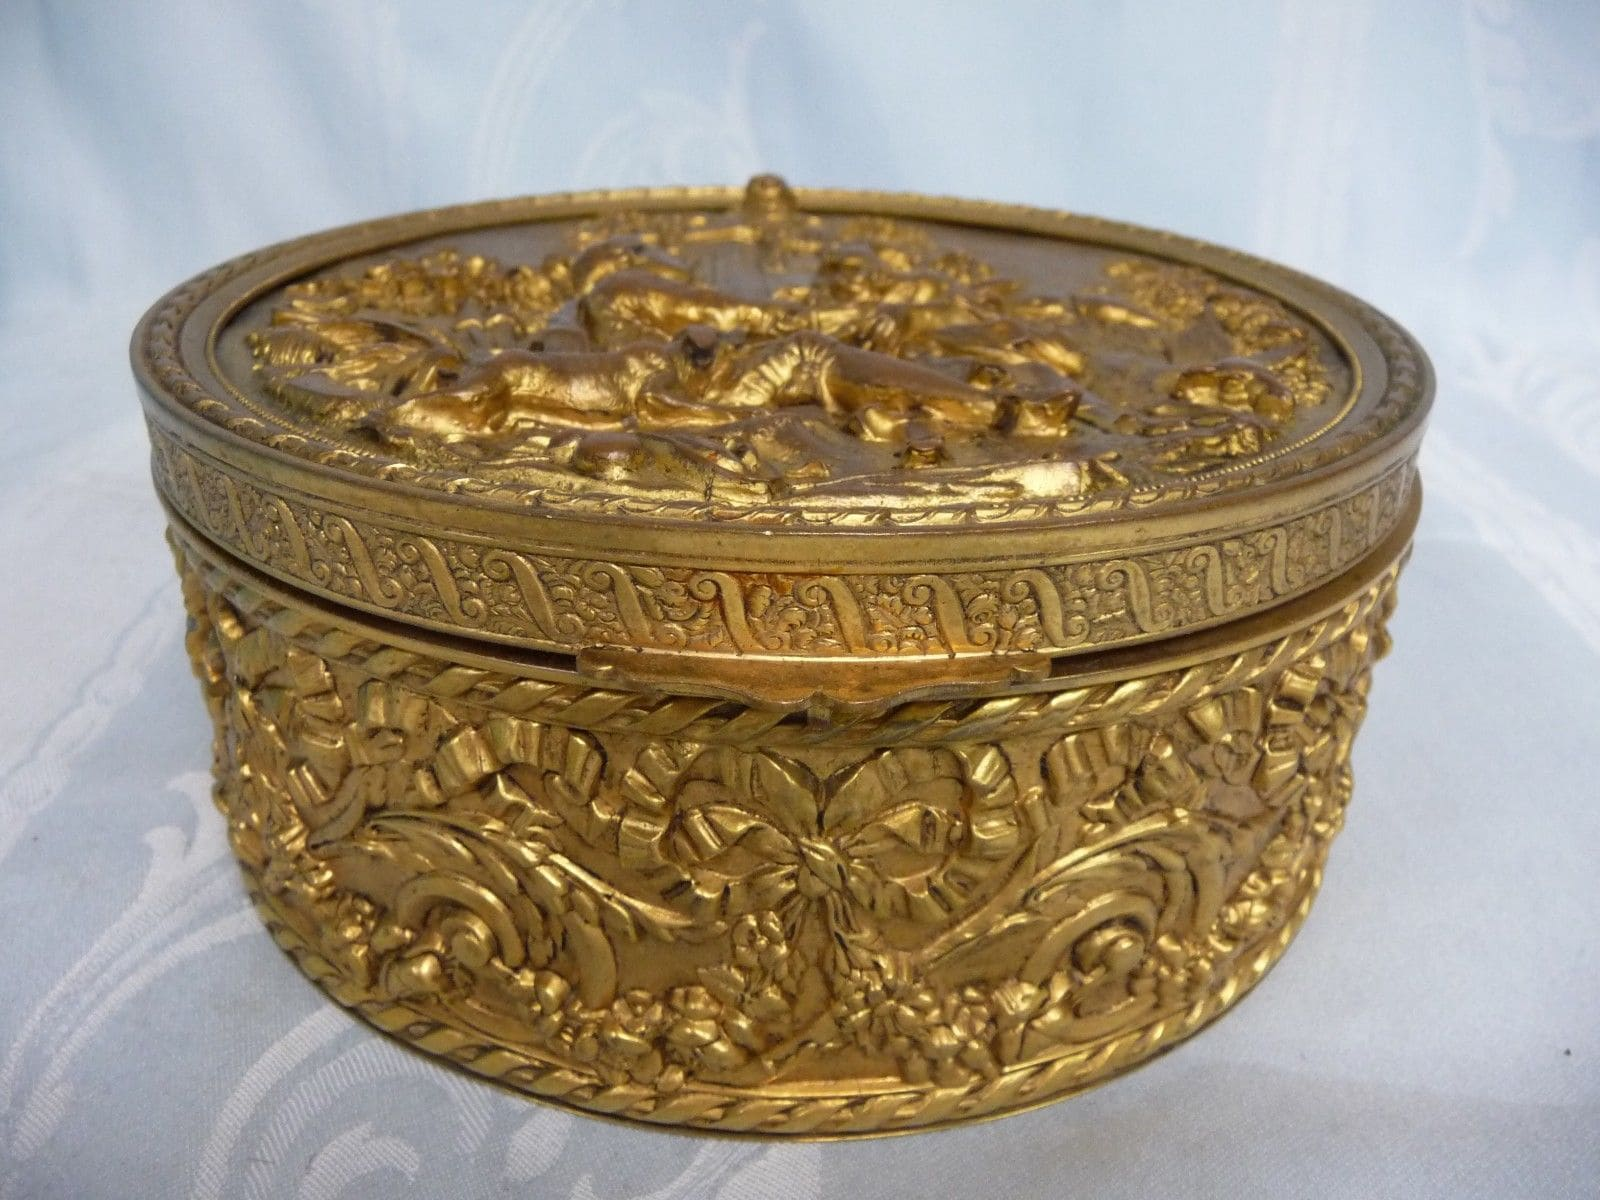 ANTIQUE FRENCH BRONZE REPOUSSE HINGED BOX